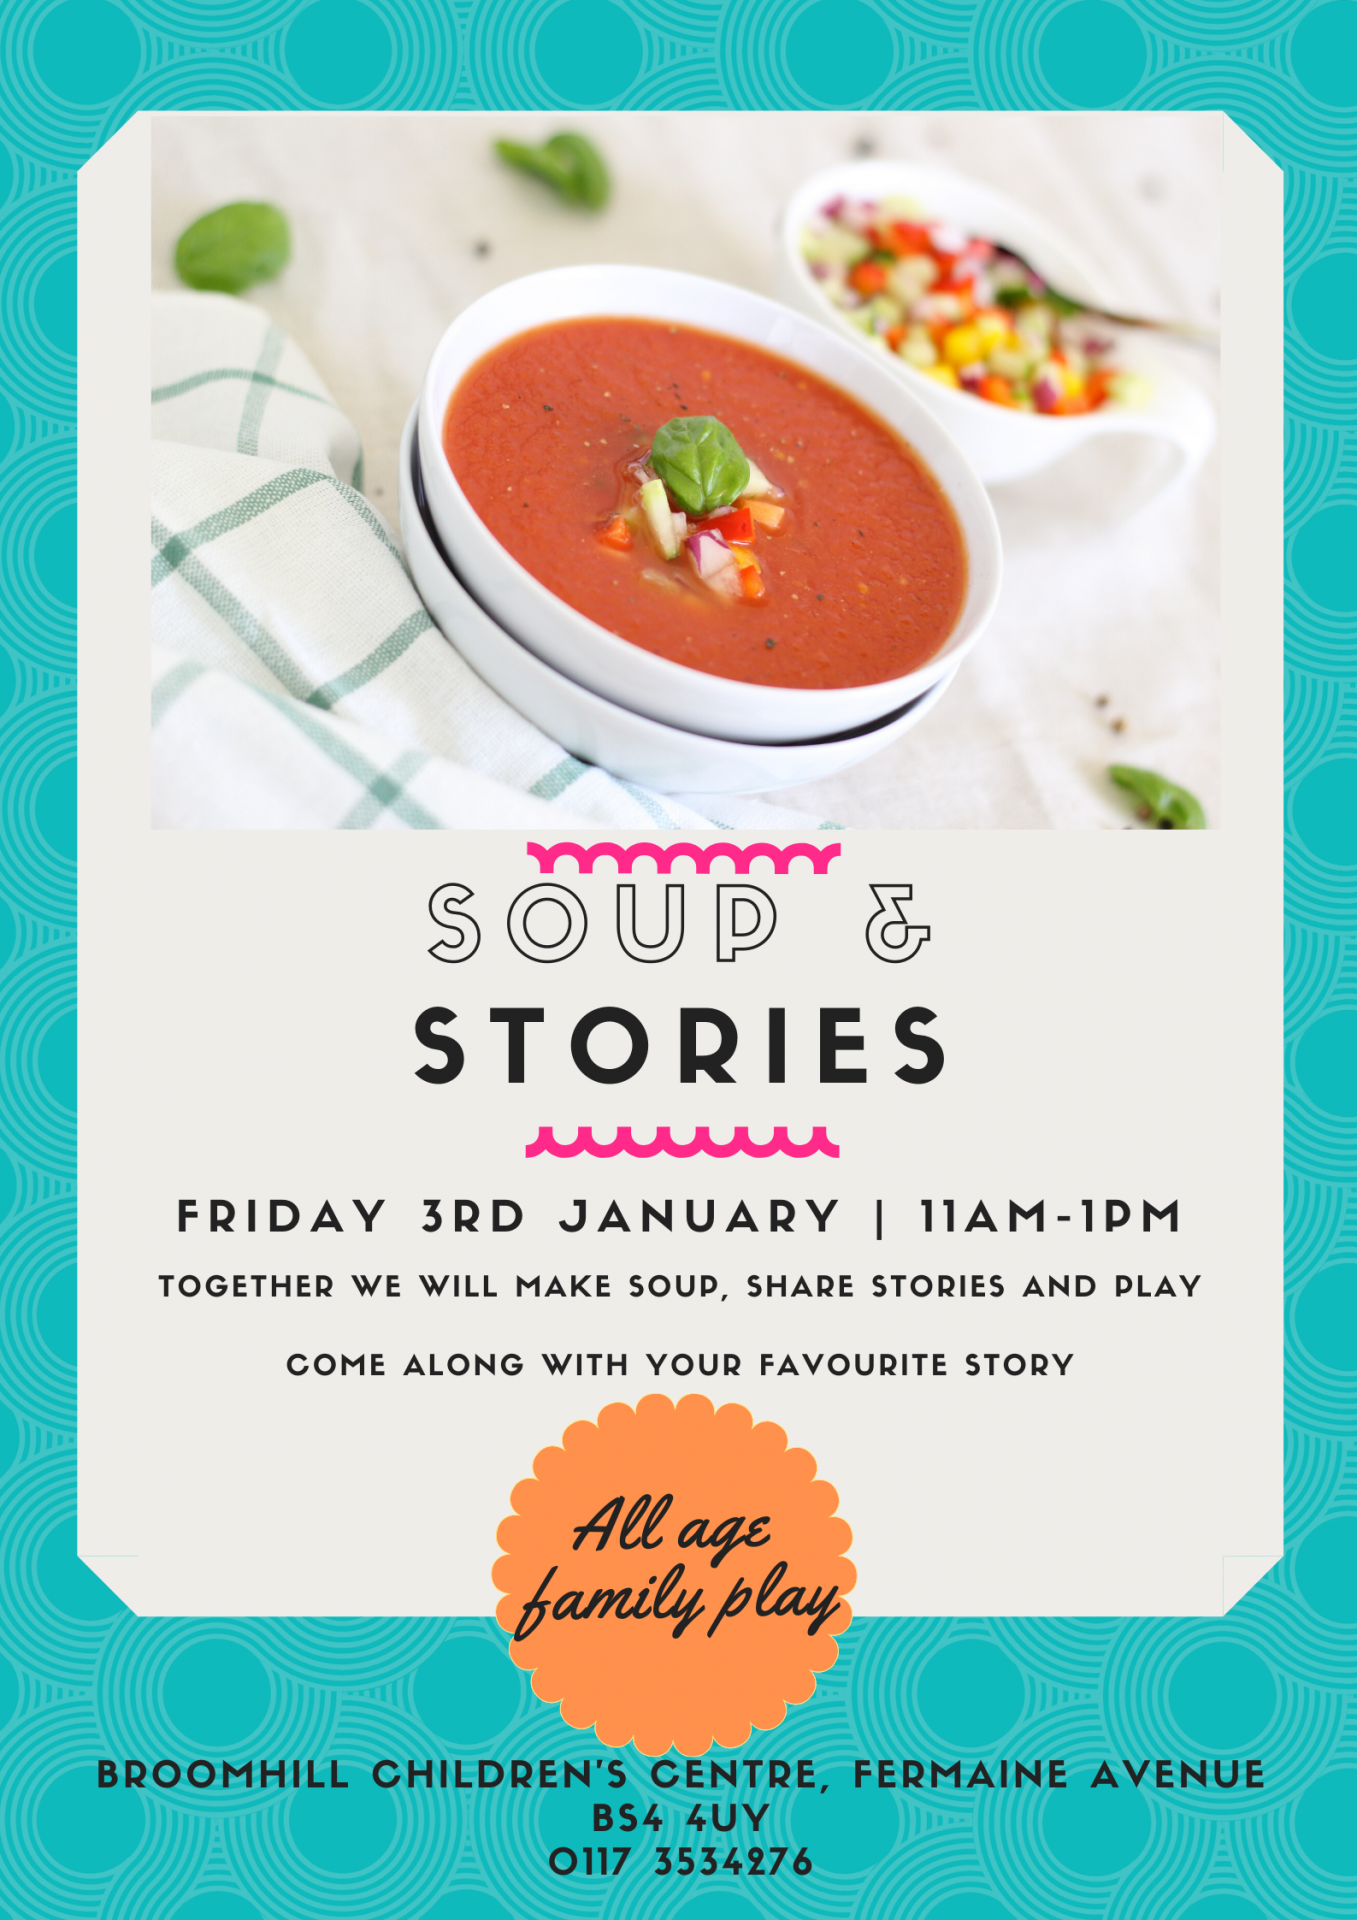 Soup & Stories at Broomhill and Speedwell Children's Centers